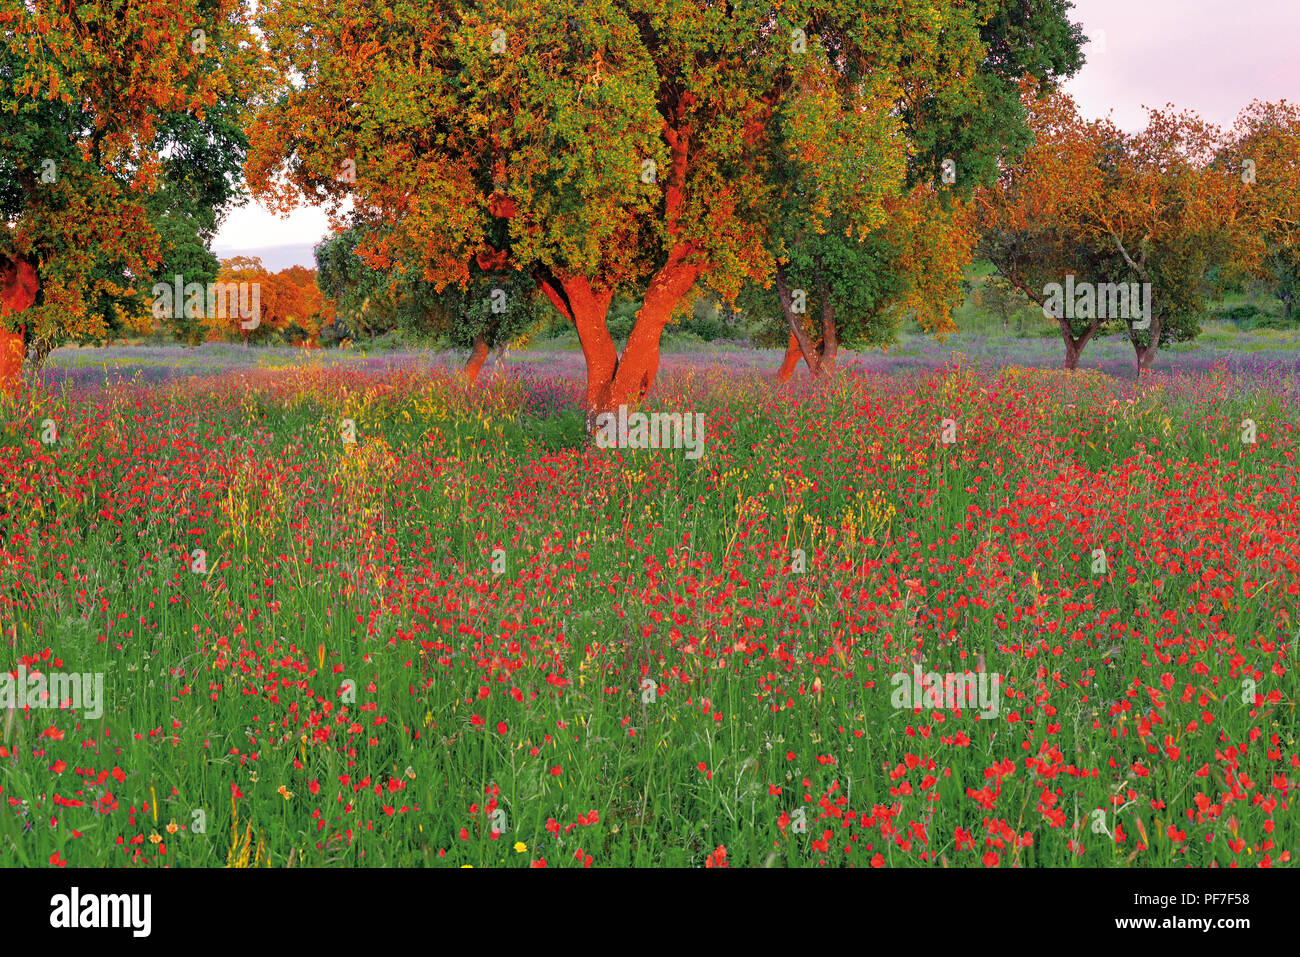 Cork oaks surrounded by green grass and wild colorful flowers - Stock Image